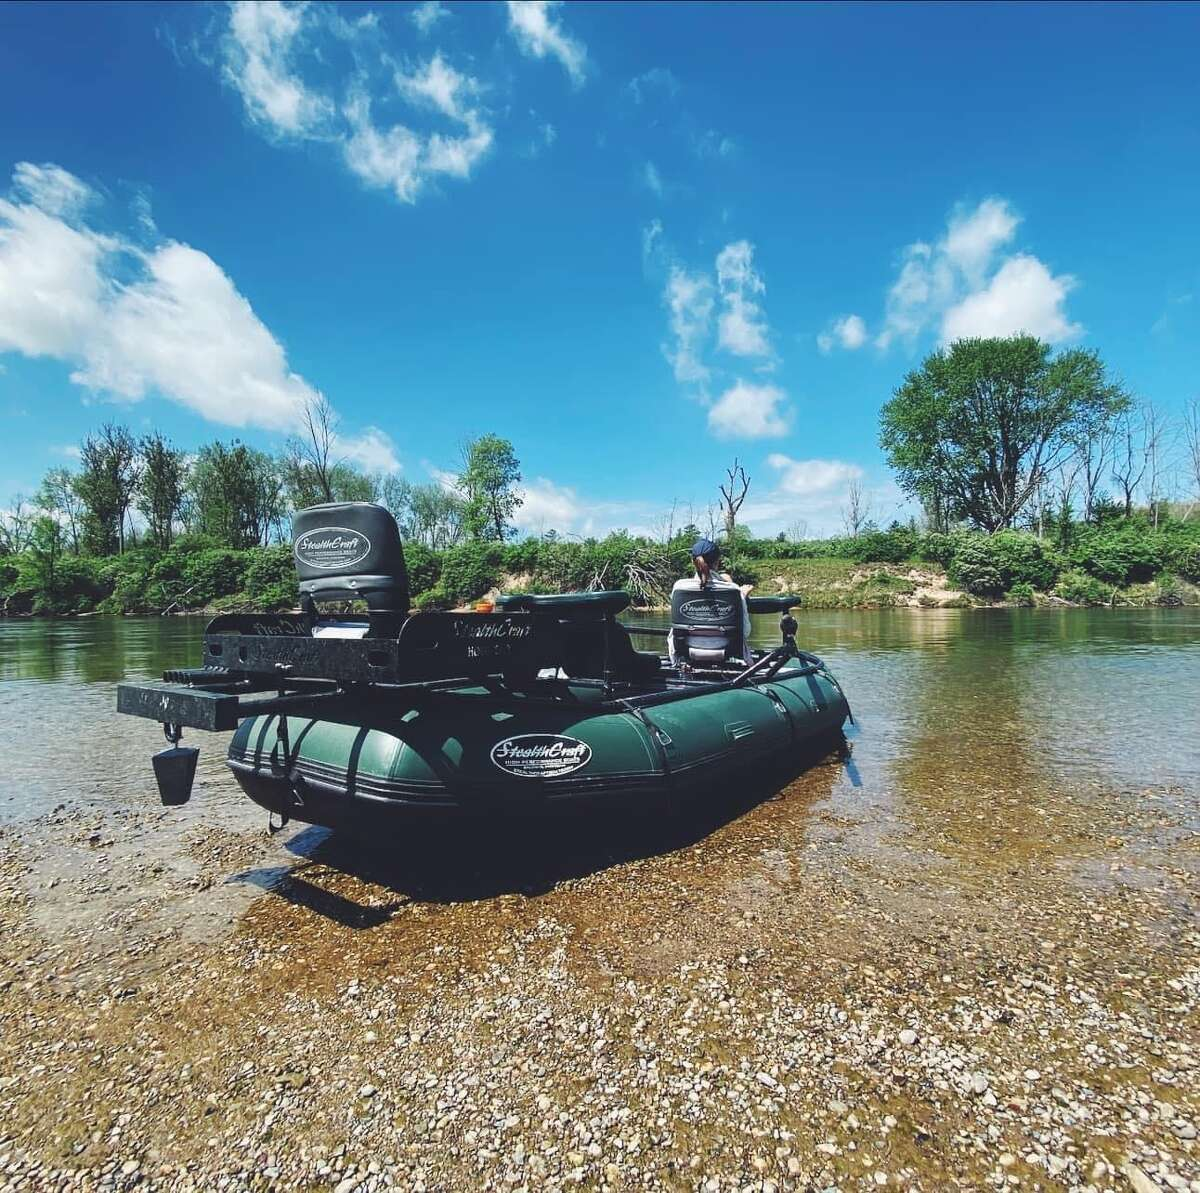 Andy Anderson recently started a new business, Anderson Guide Service, after previously working for Manistee Adventures.